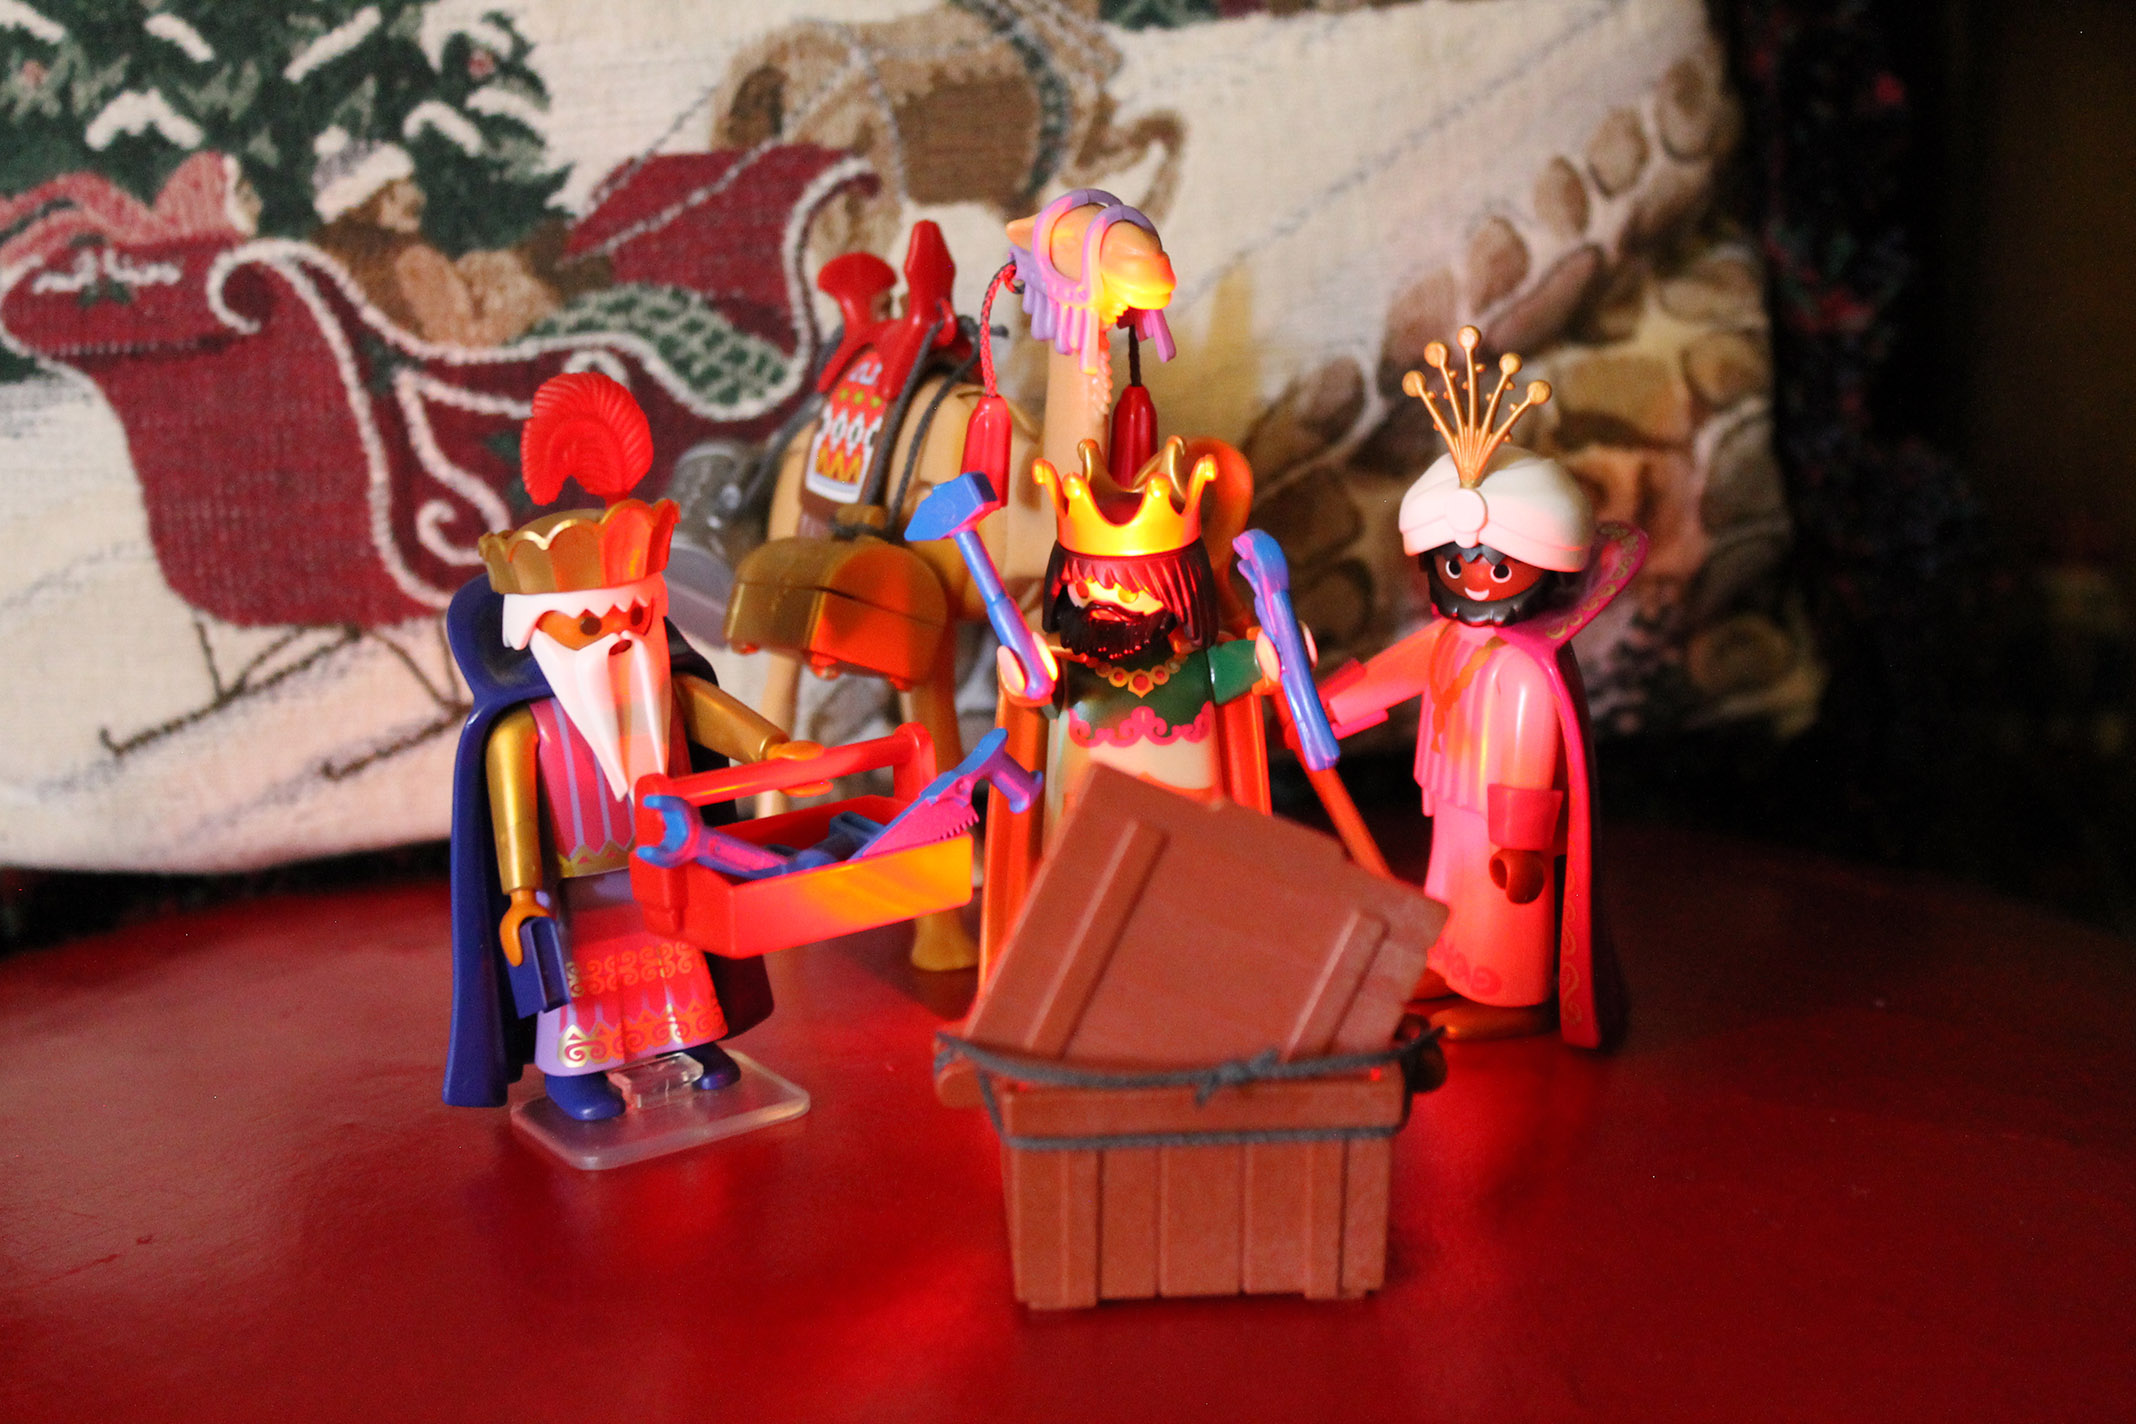 The three wisemen and a glowing crate.